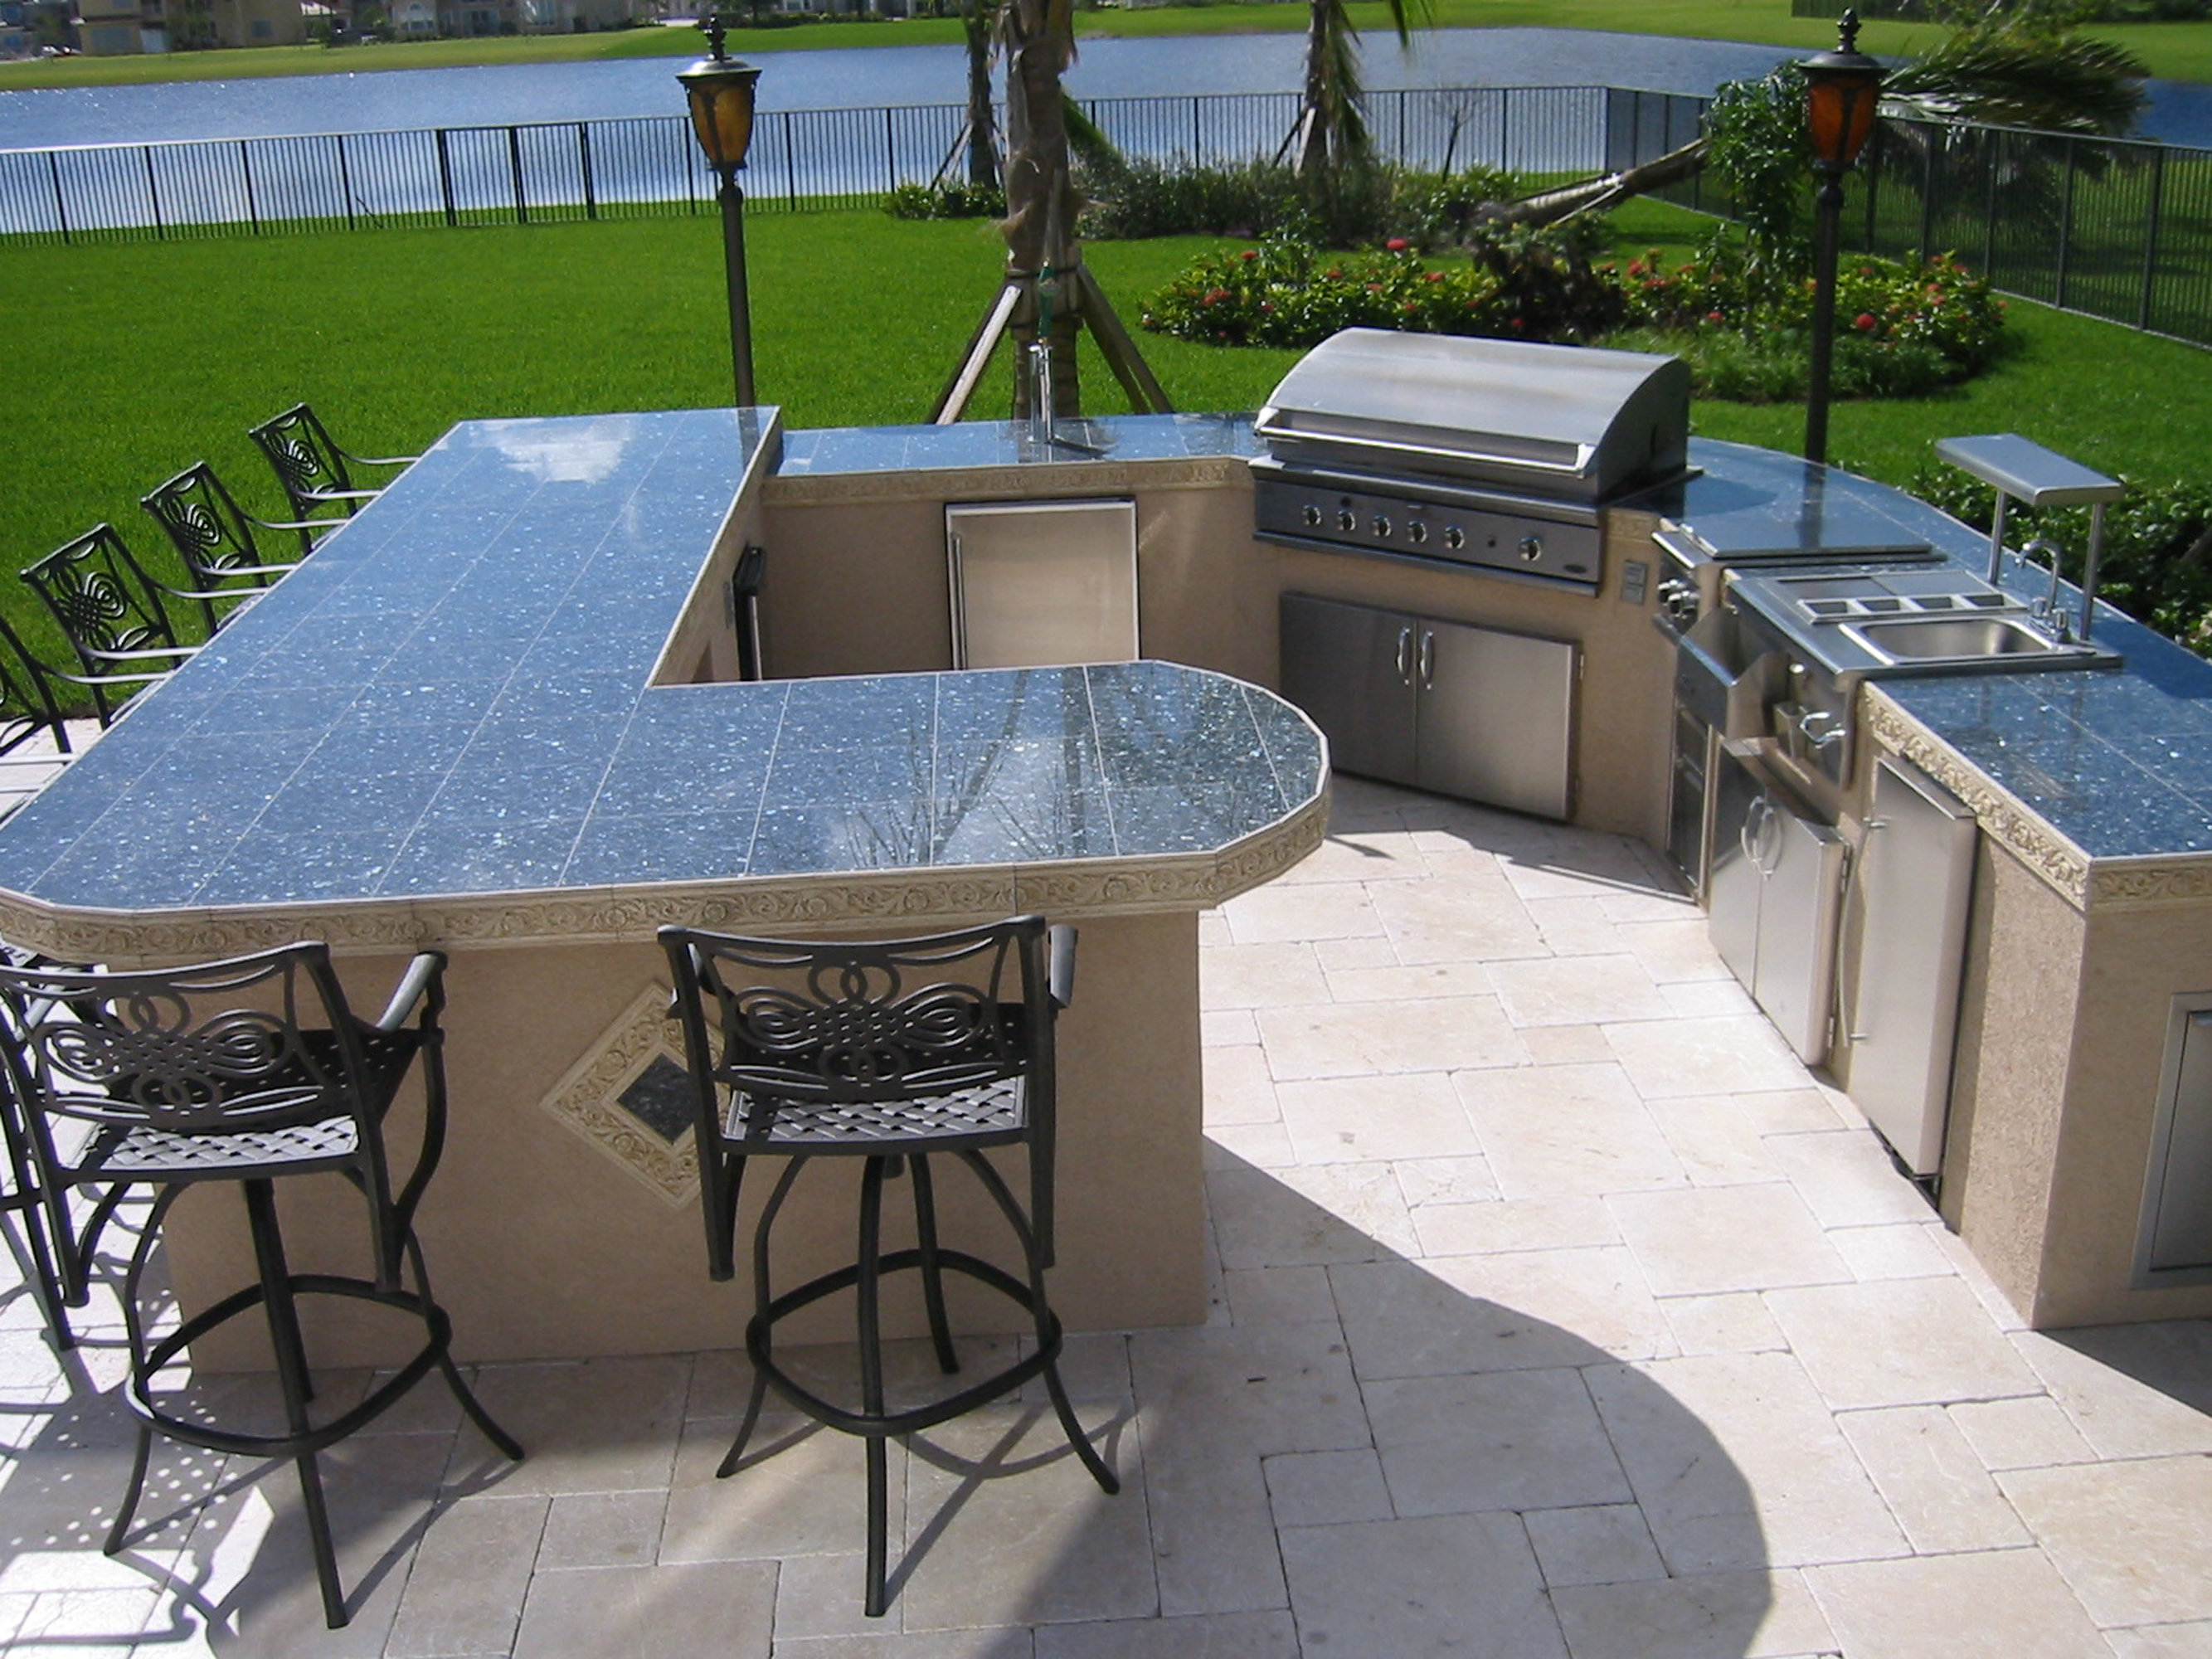 Outdoor Kitchen Design Images | GRILL-REPAIR.COM barbeque ... on Backyard Patio Grill Island id=40906